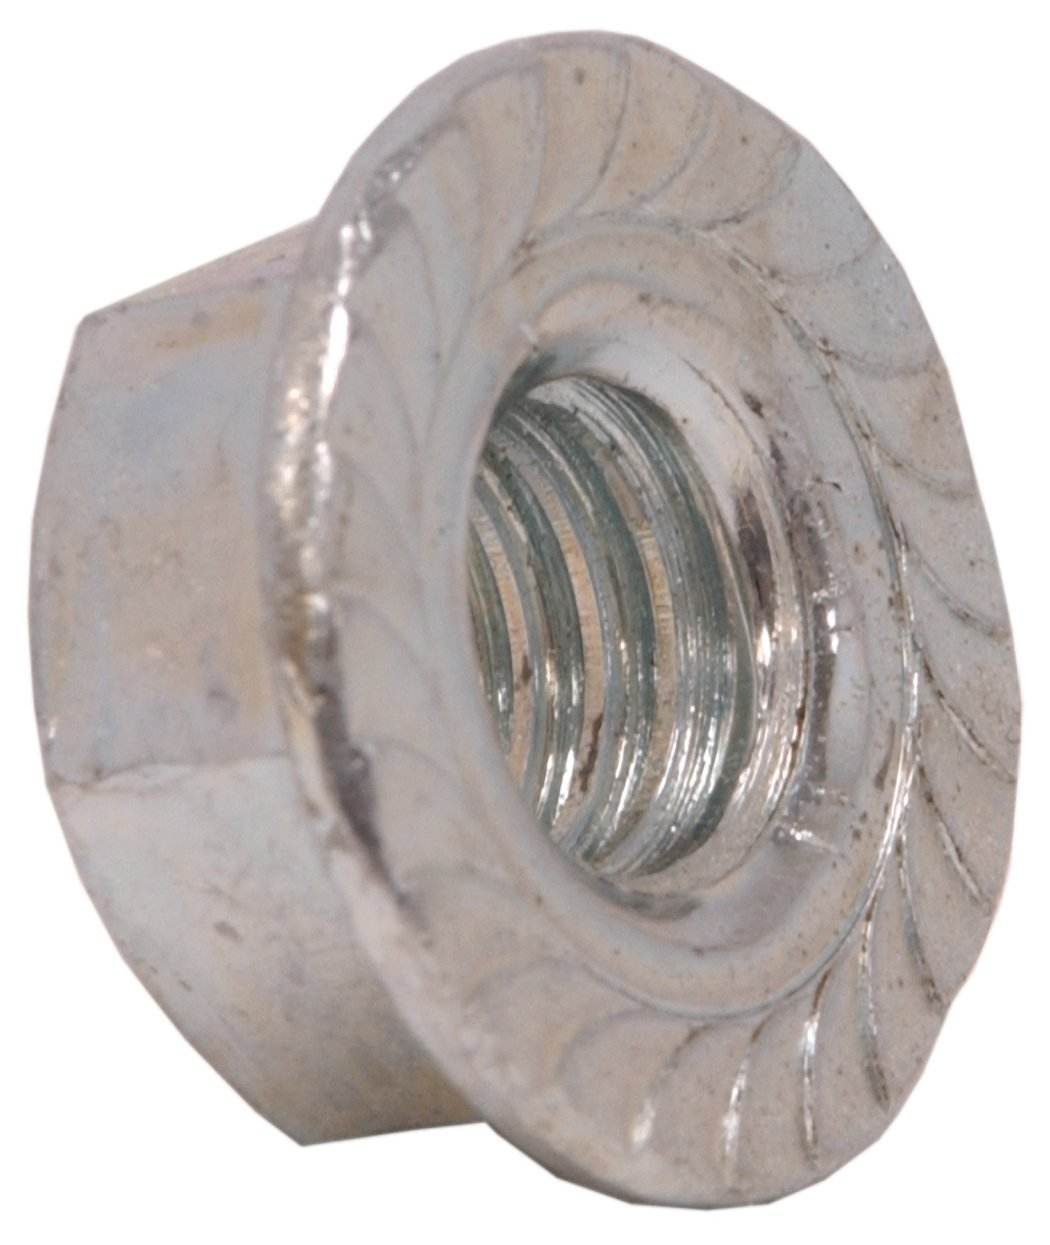 The Hillman Group 180397 1 1 1 5/16-18 Whiz Lock Nut, 100-Pack